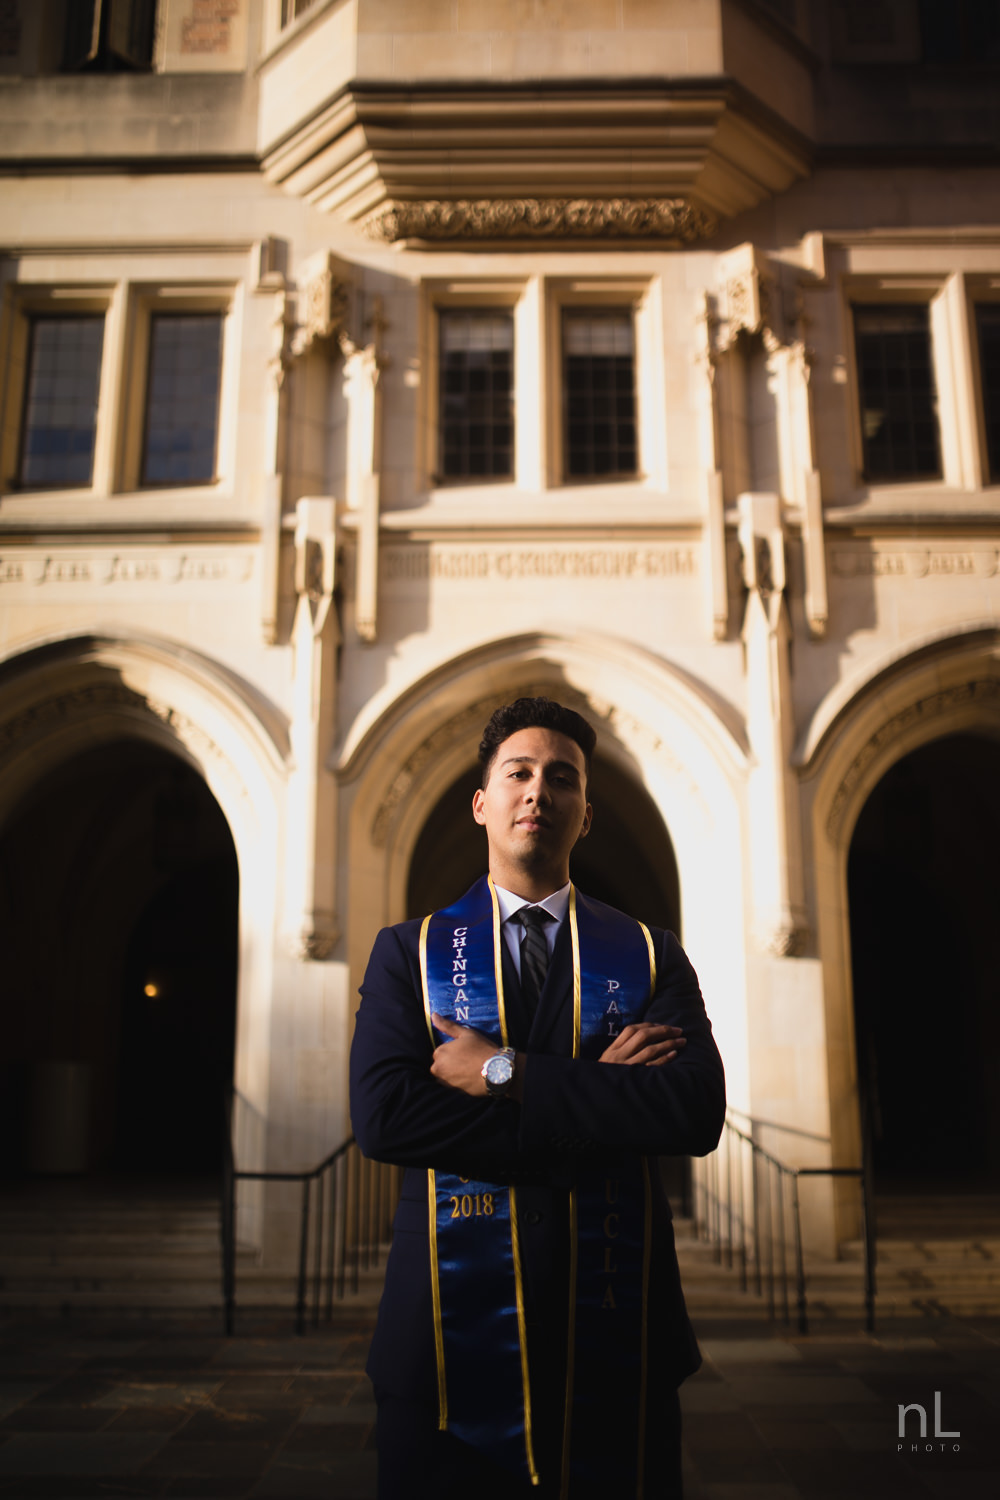 UCLA Class of 2019 graduate wearing suit and tie and graduation sash looking serious in front of Kerckhoff Hall.